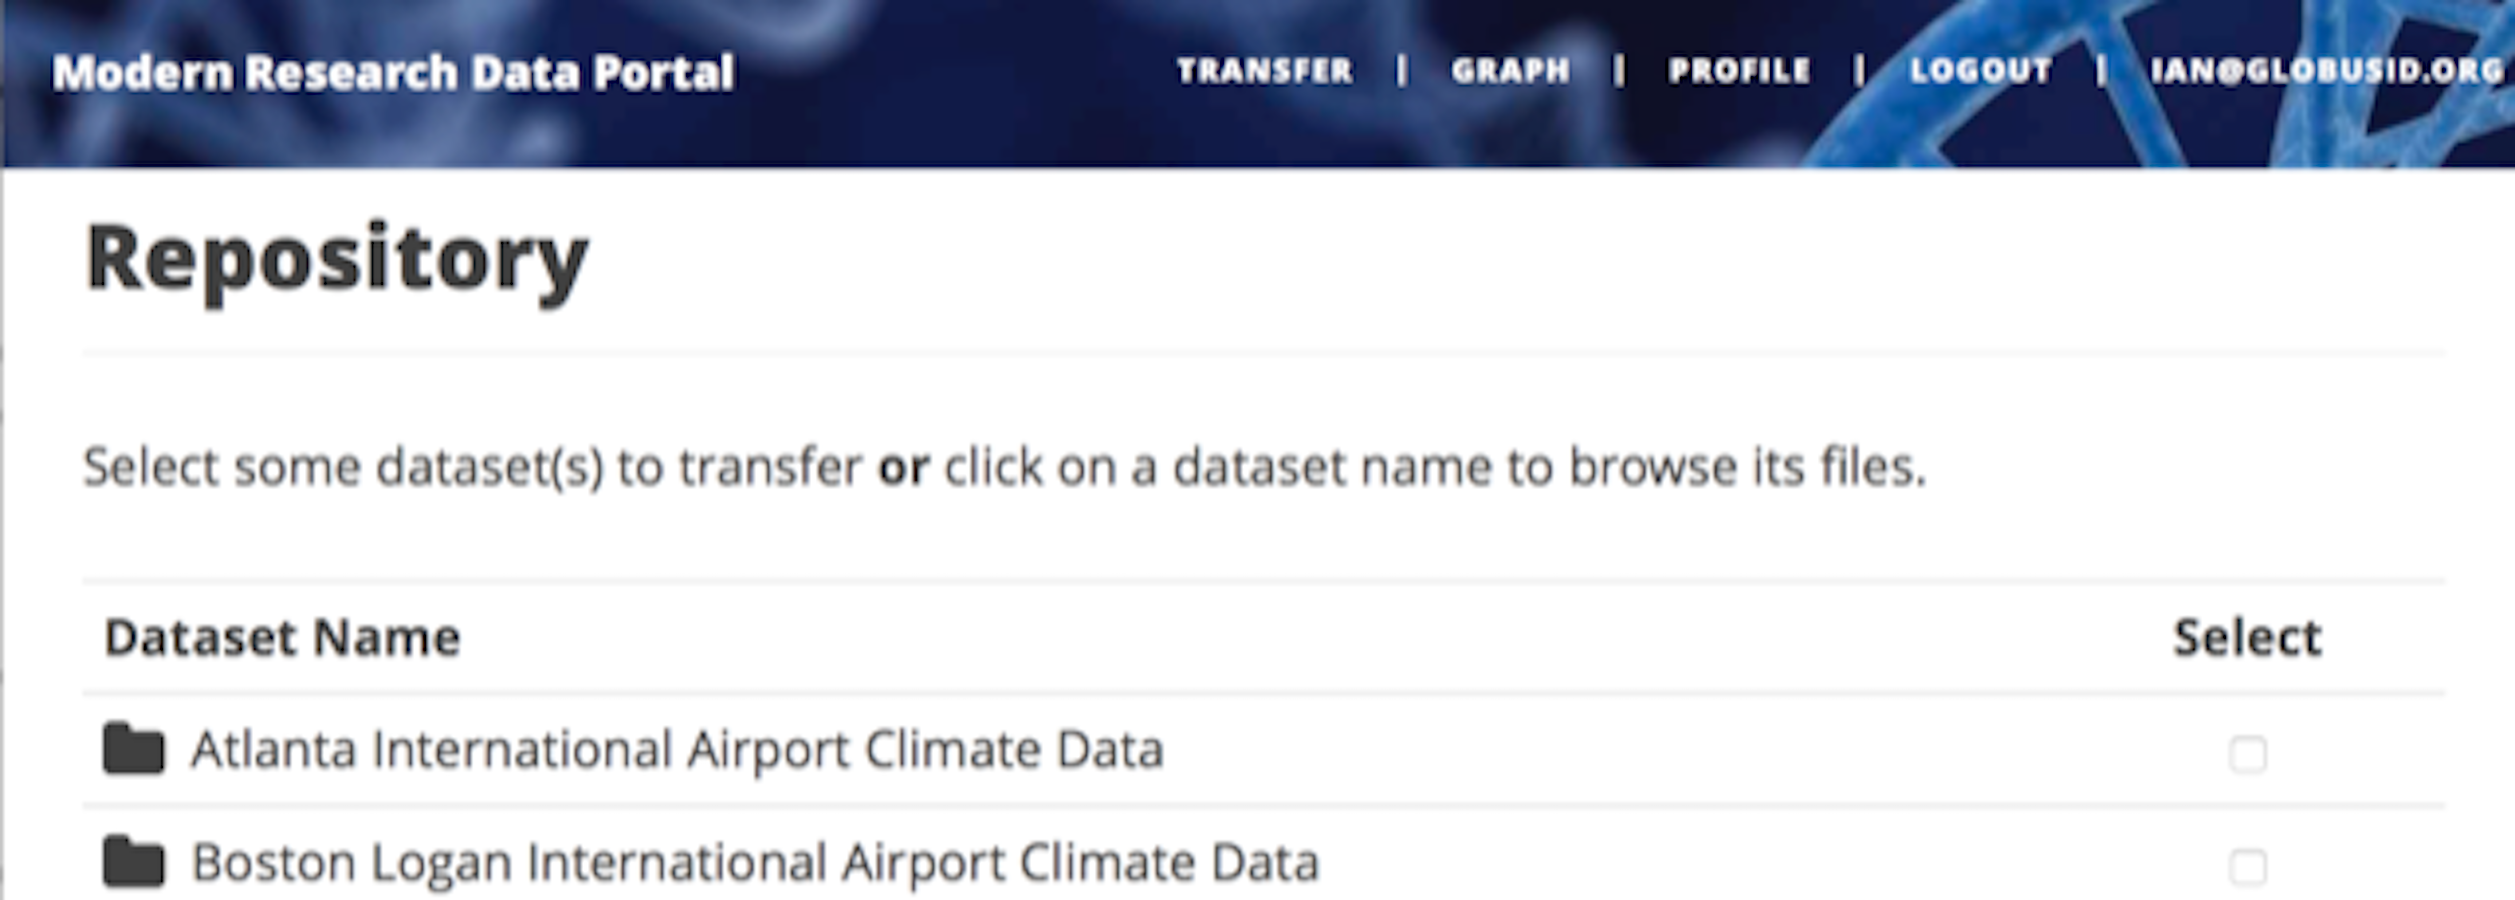 The Modern Research Data Portal: a design pattern for